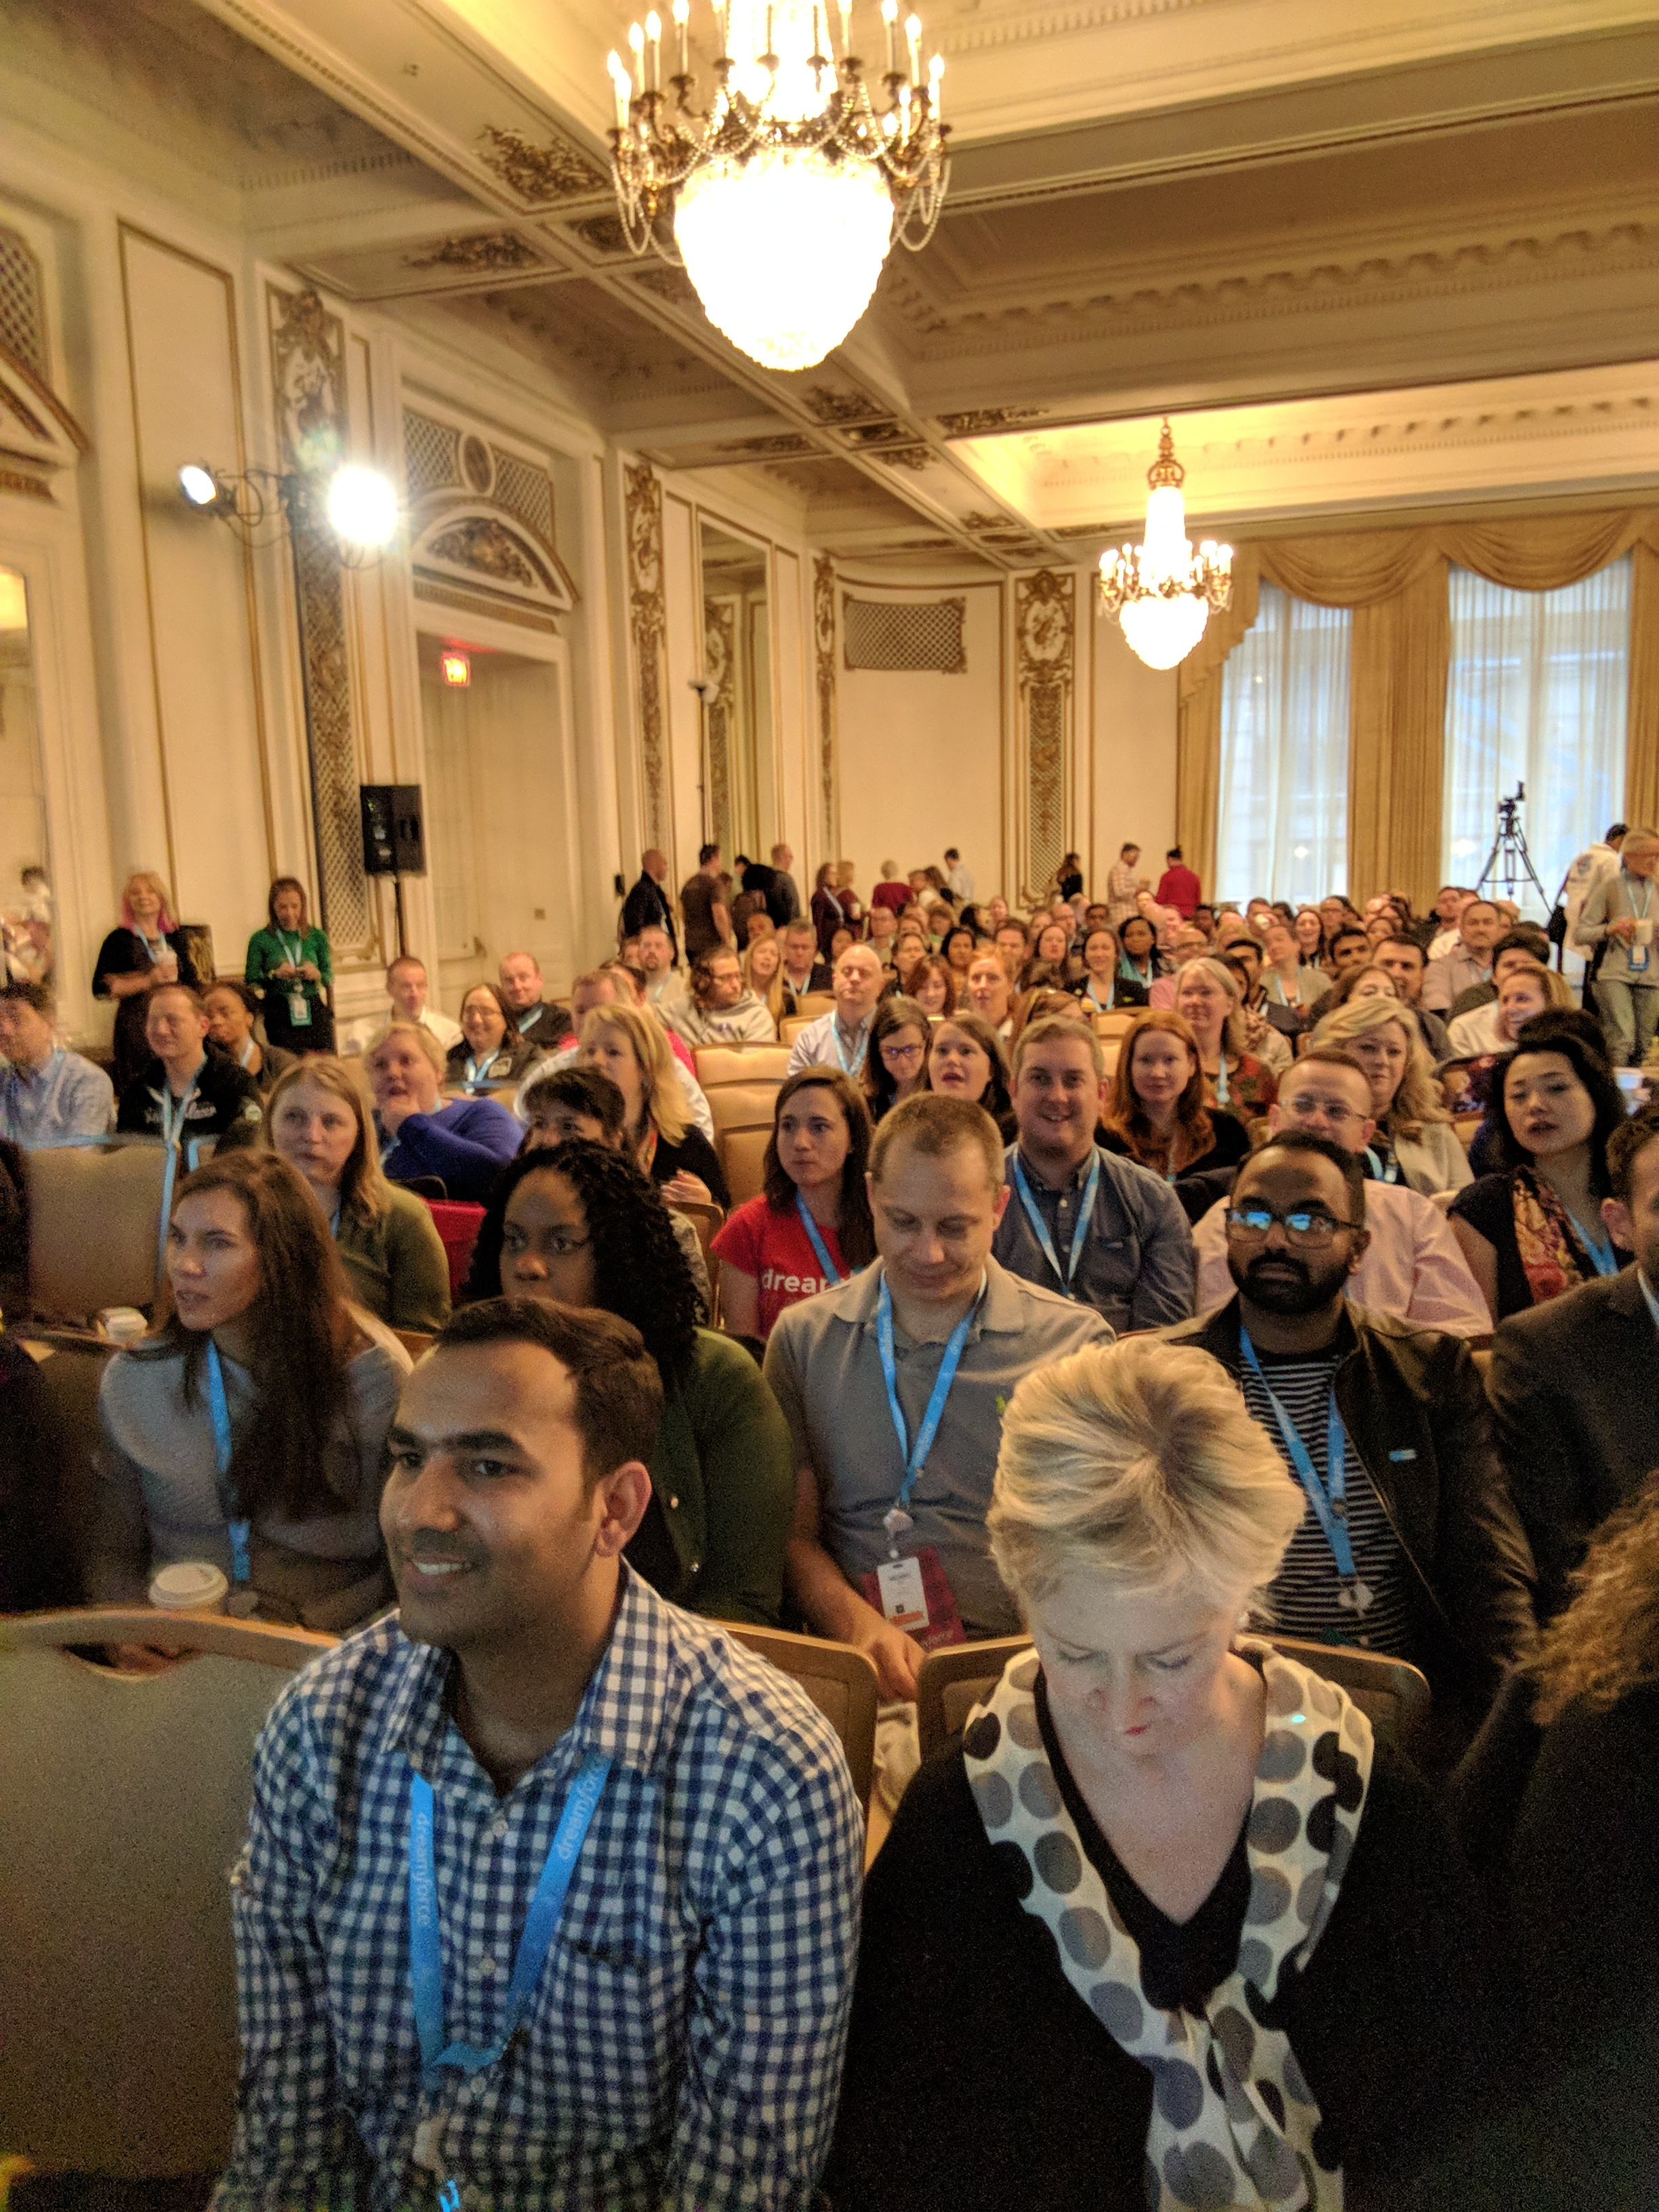 Community Empfang: State of the Union - Dreamforce 2017